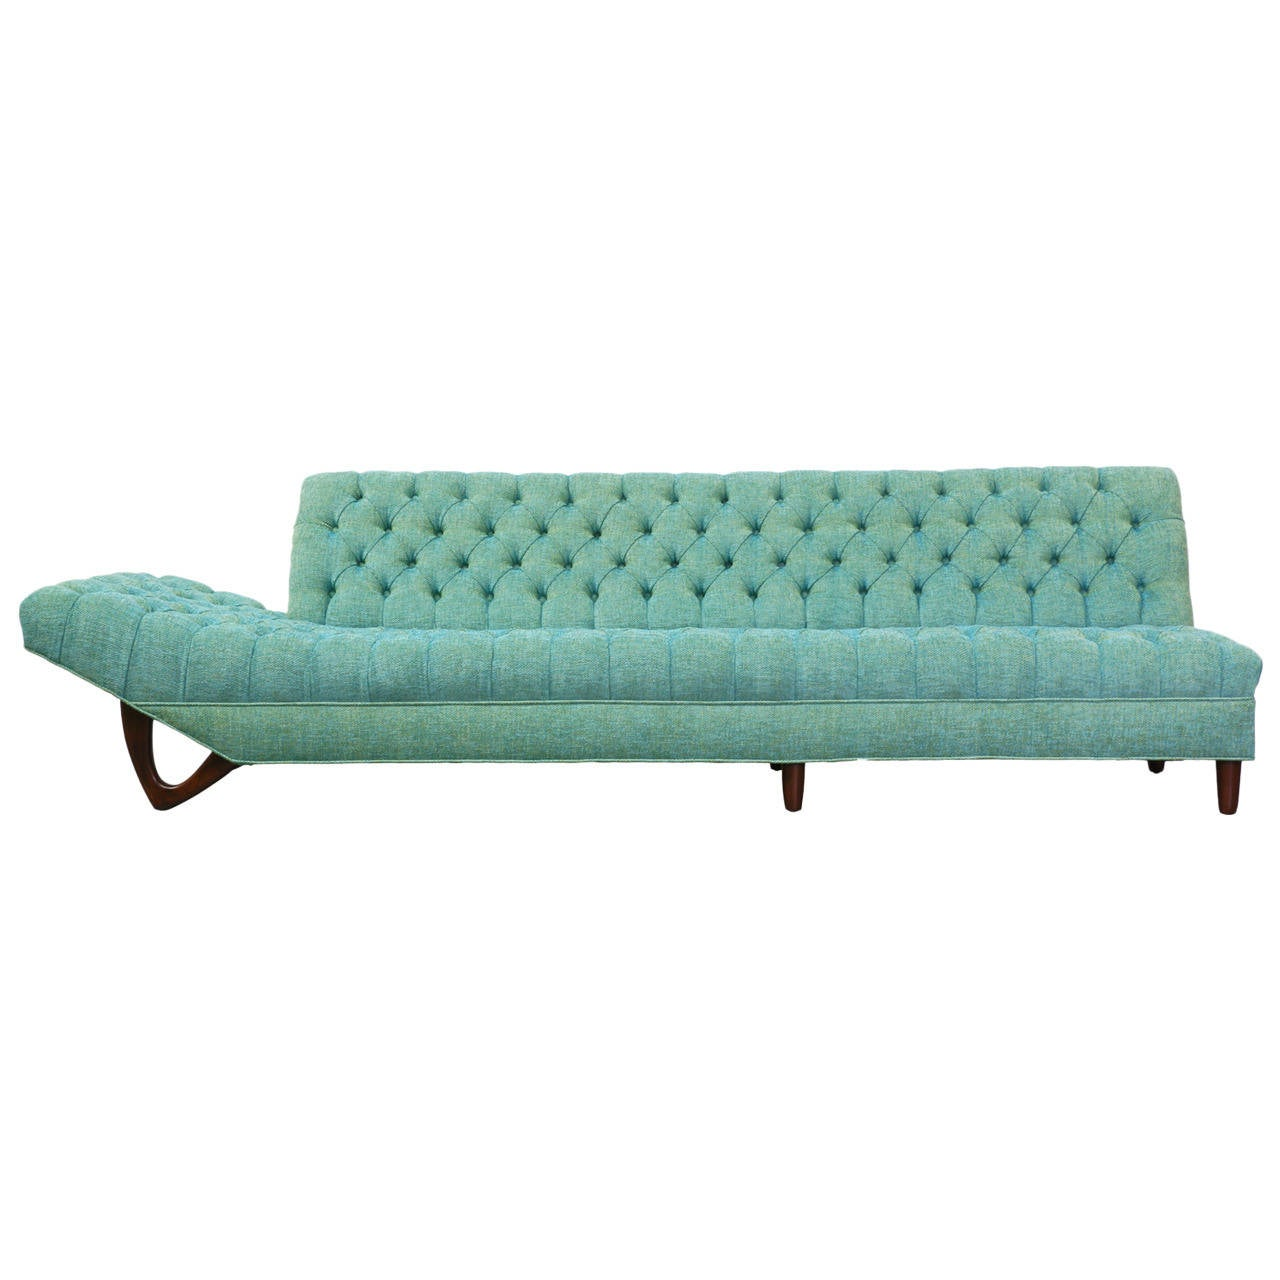 Chaise Lounge Styles: Craft Associates Style Tufted Sofa Or Chaise Lounge At 1stdibs